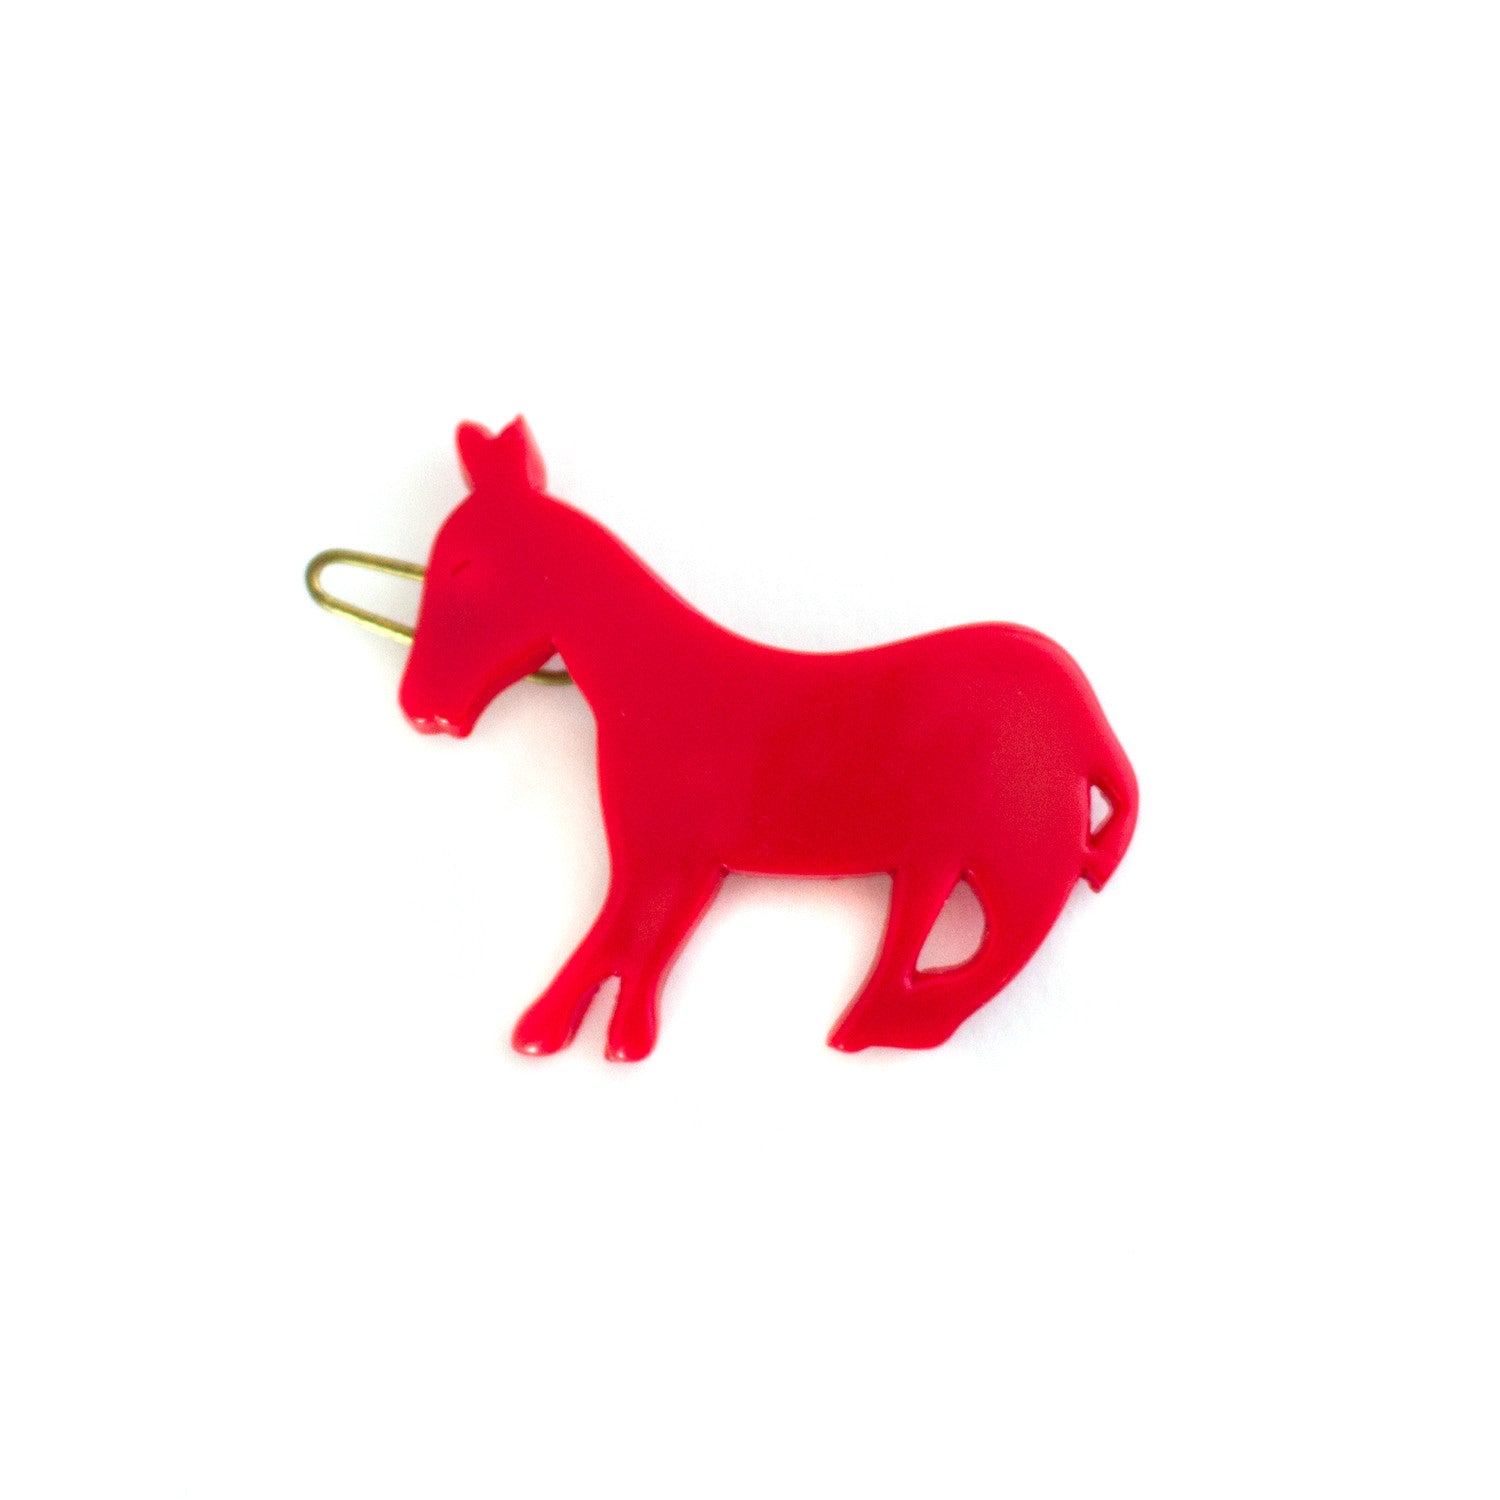 red donkey shaped hair clip - vintage made in france